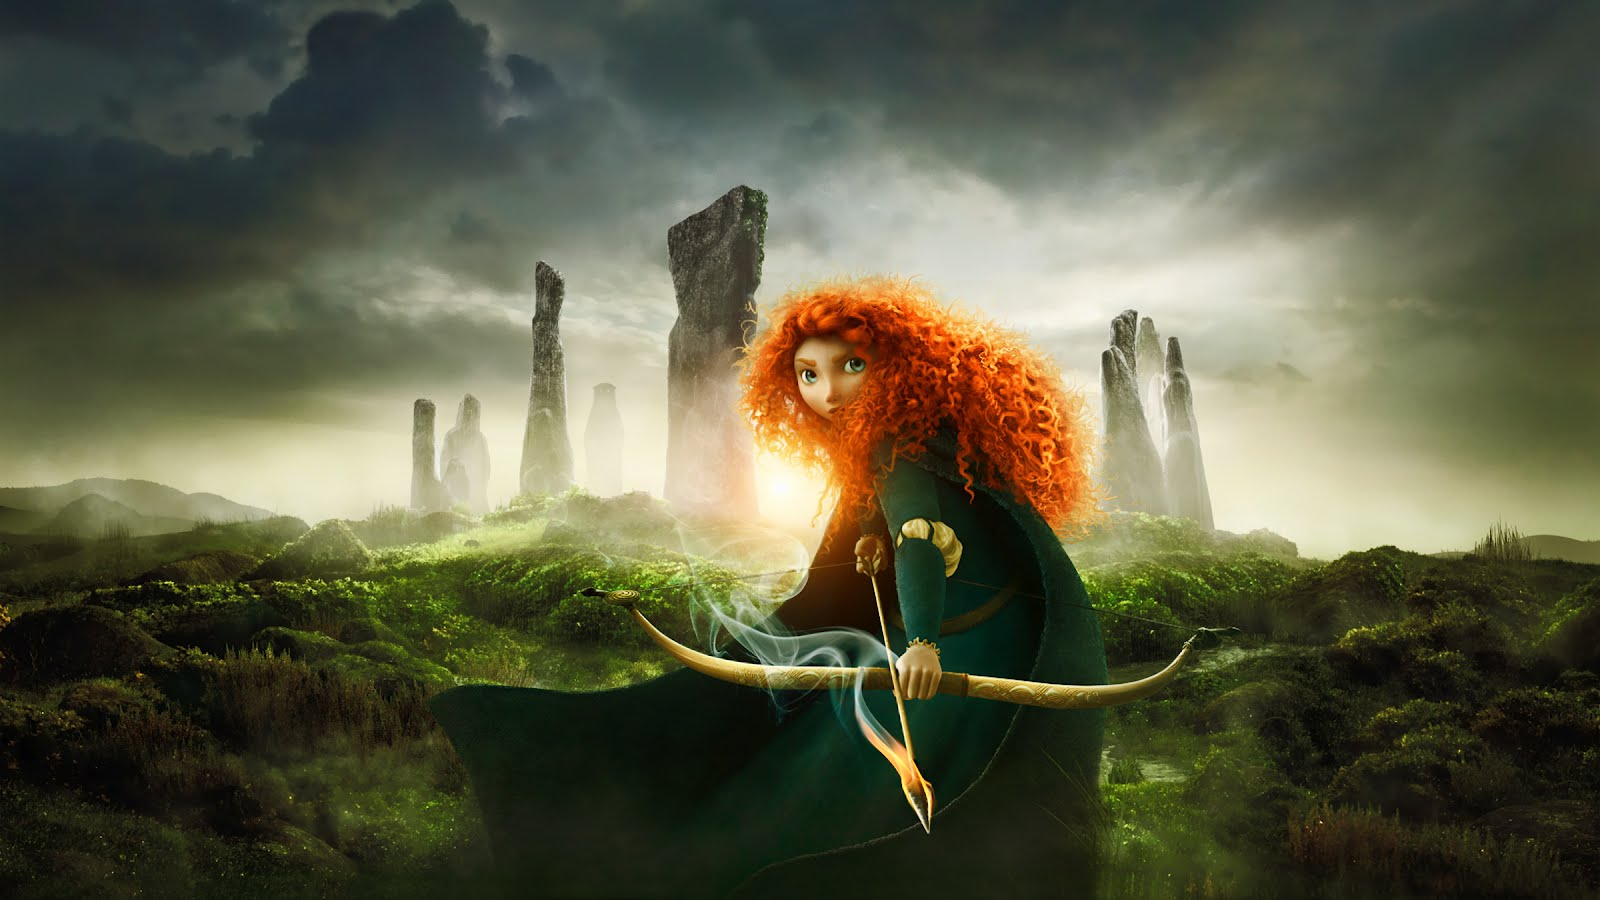 Disney Movies Hd Wallpapers: Brave Photo (31248128)